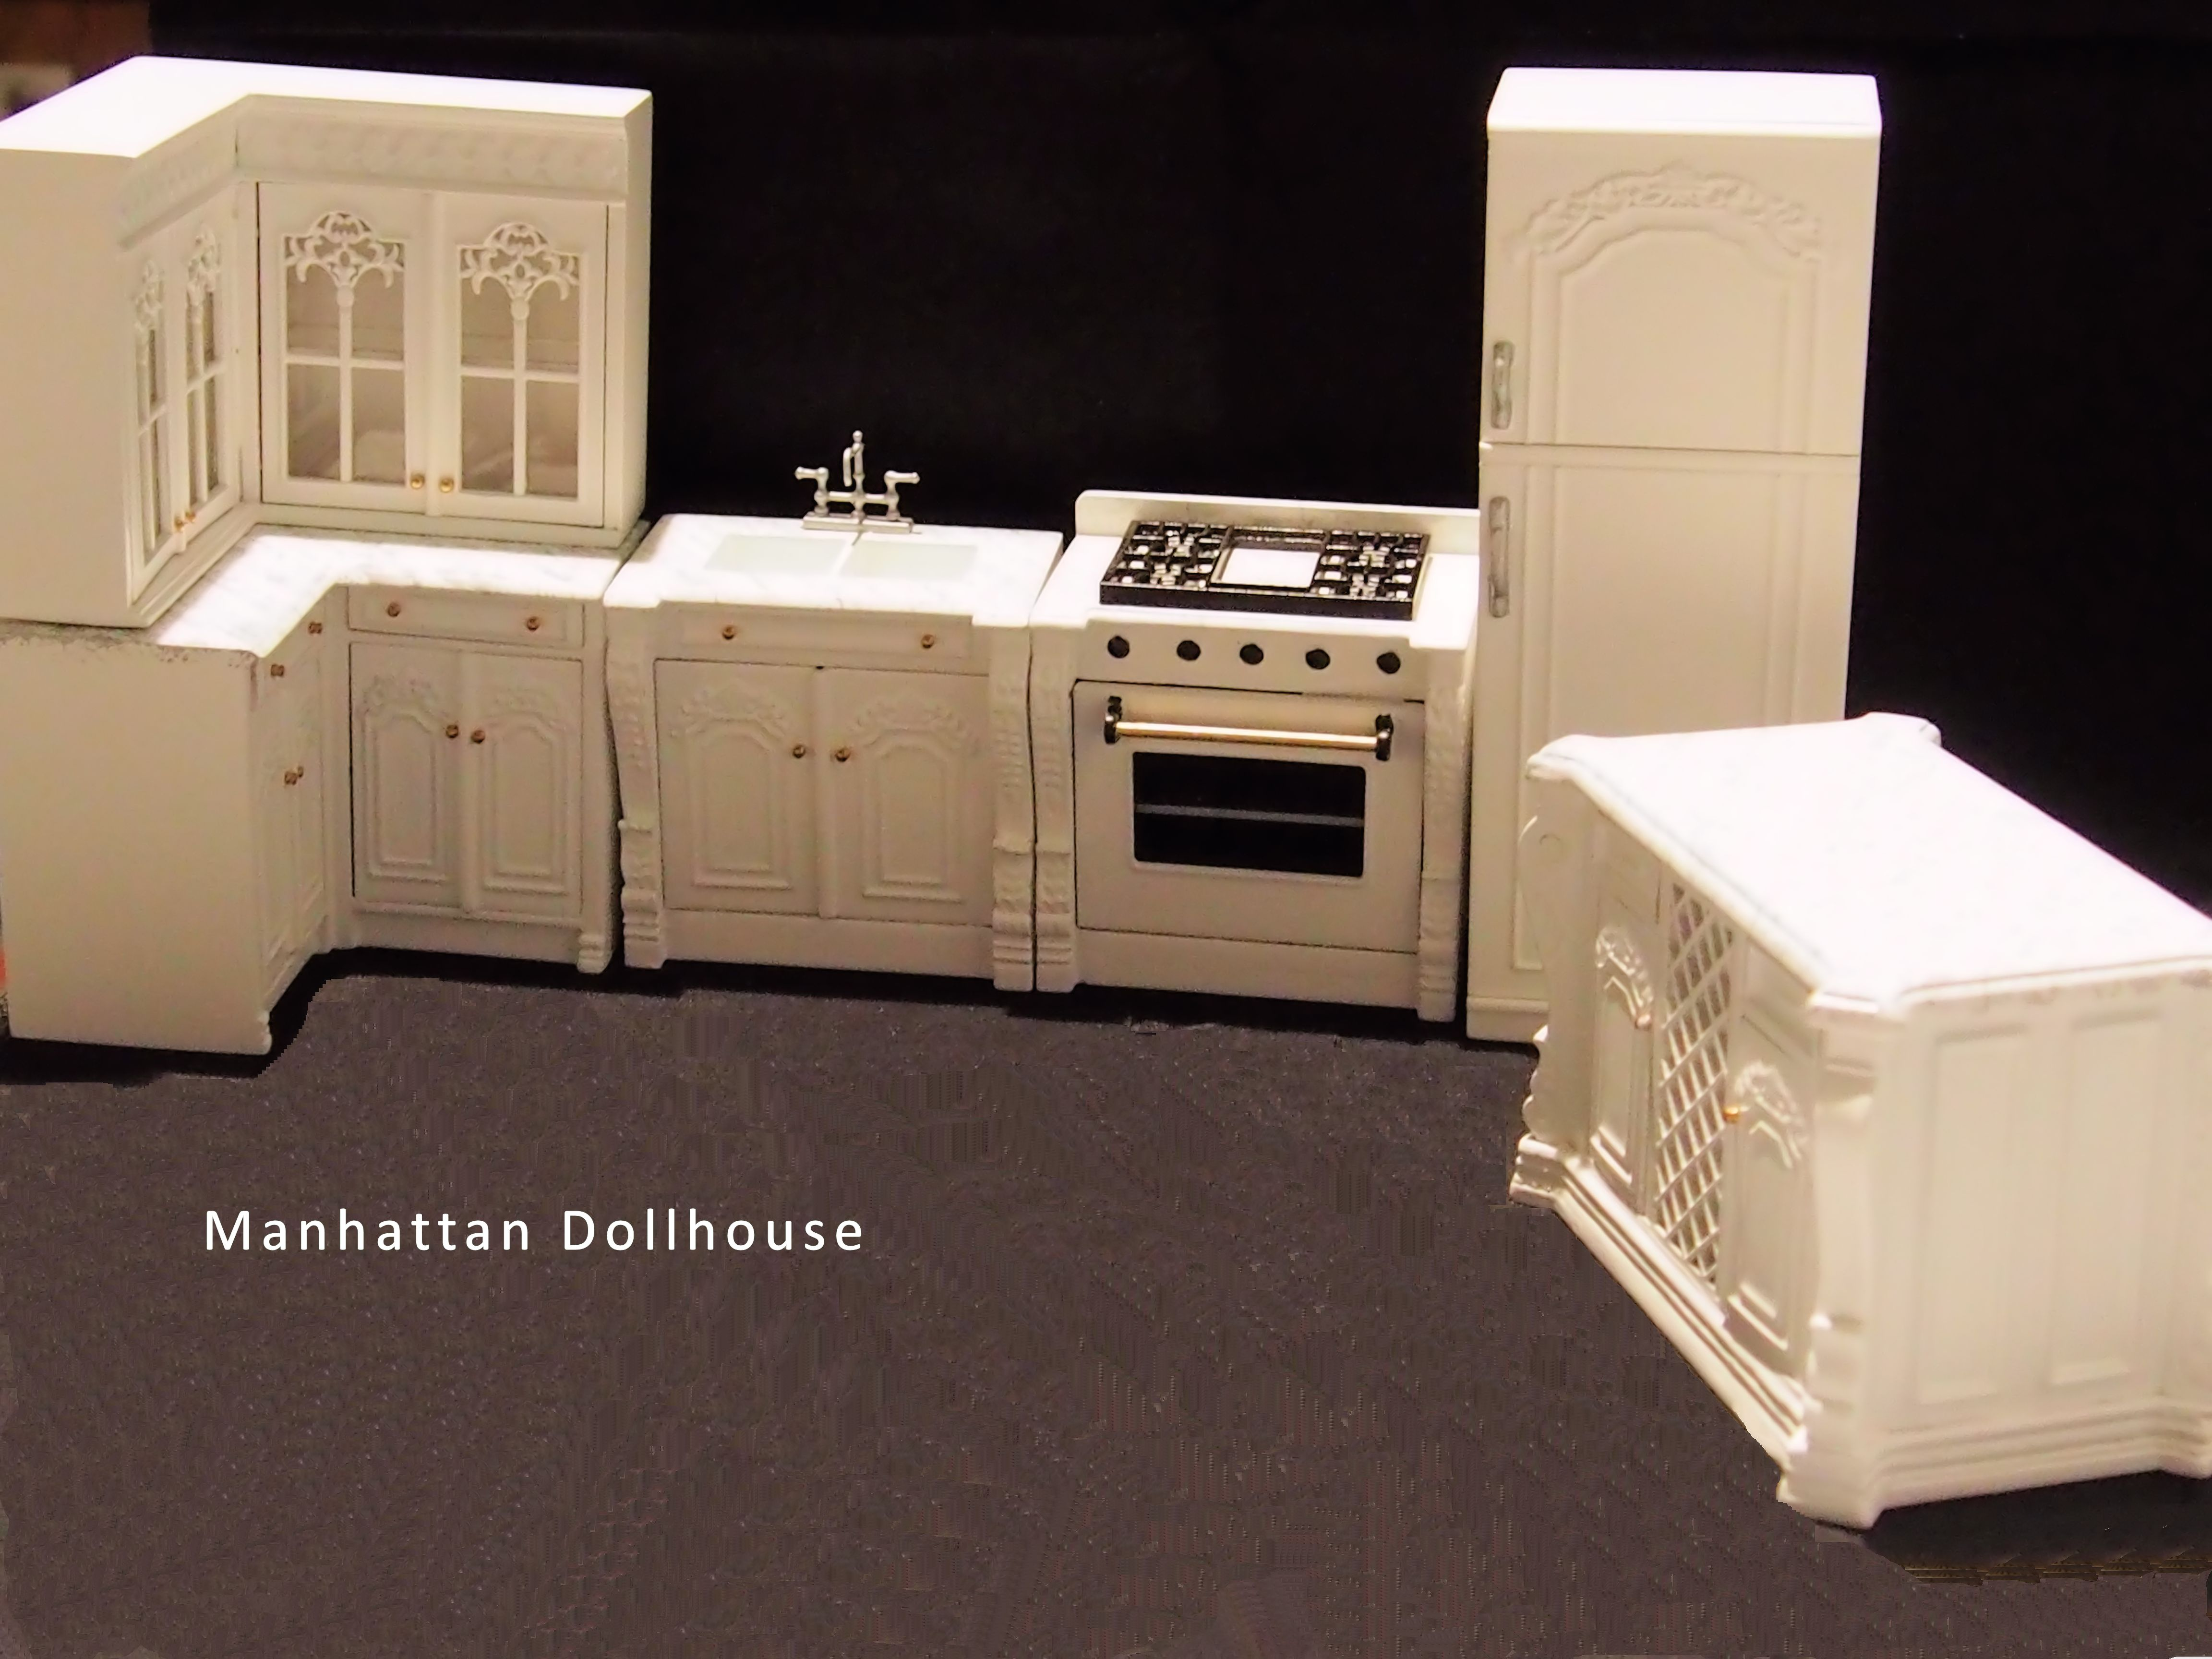 Kitchen Dollhouse Furniture Bespaq Julia White Kitchen 6 Piece Set 32000 Manhattan